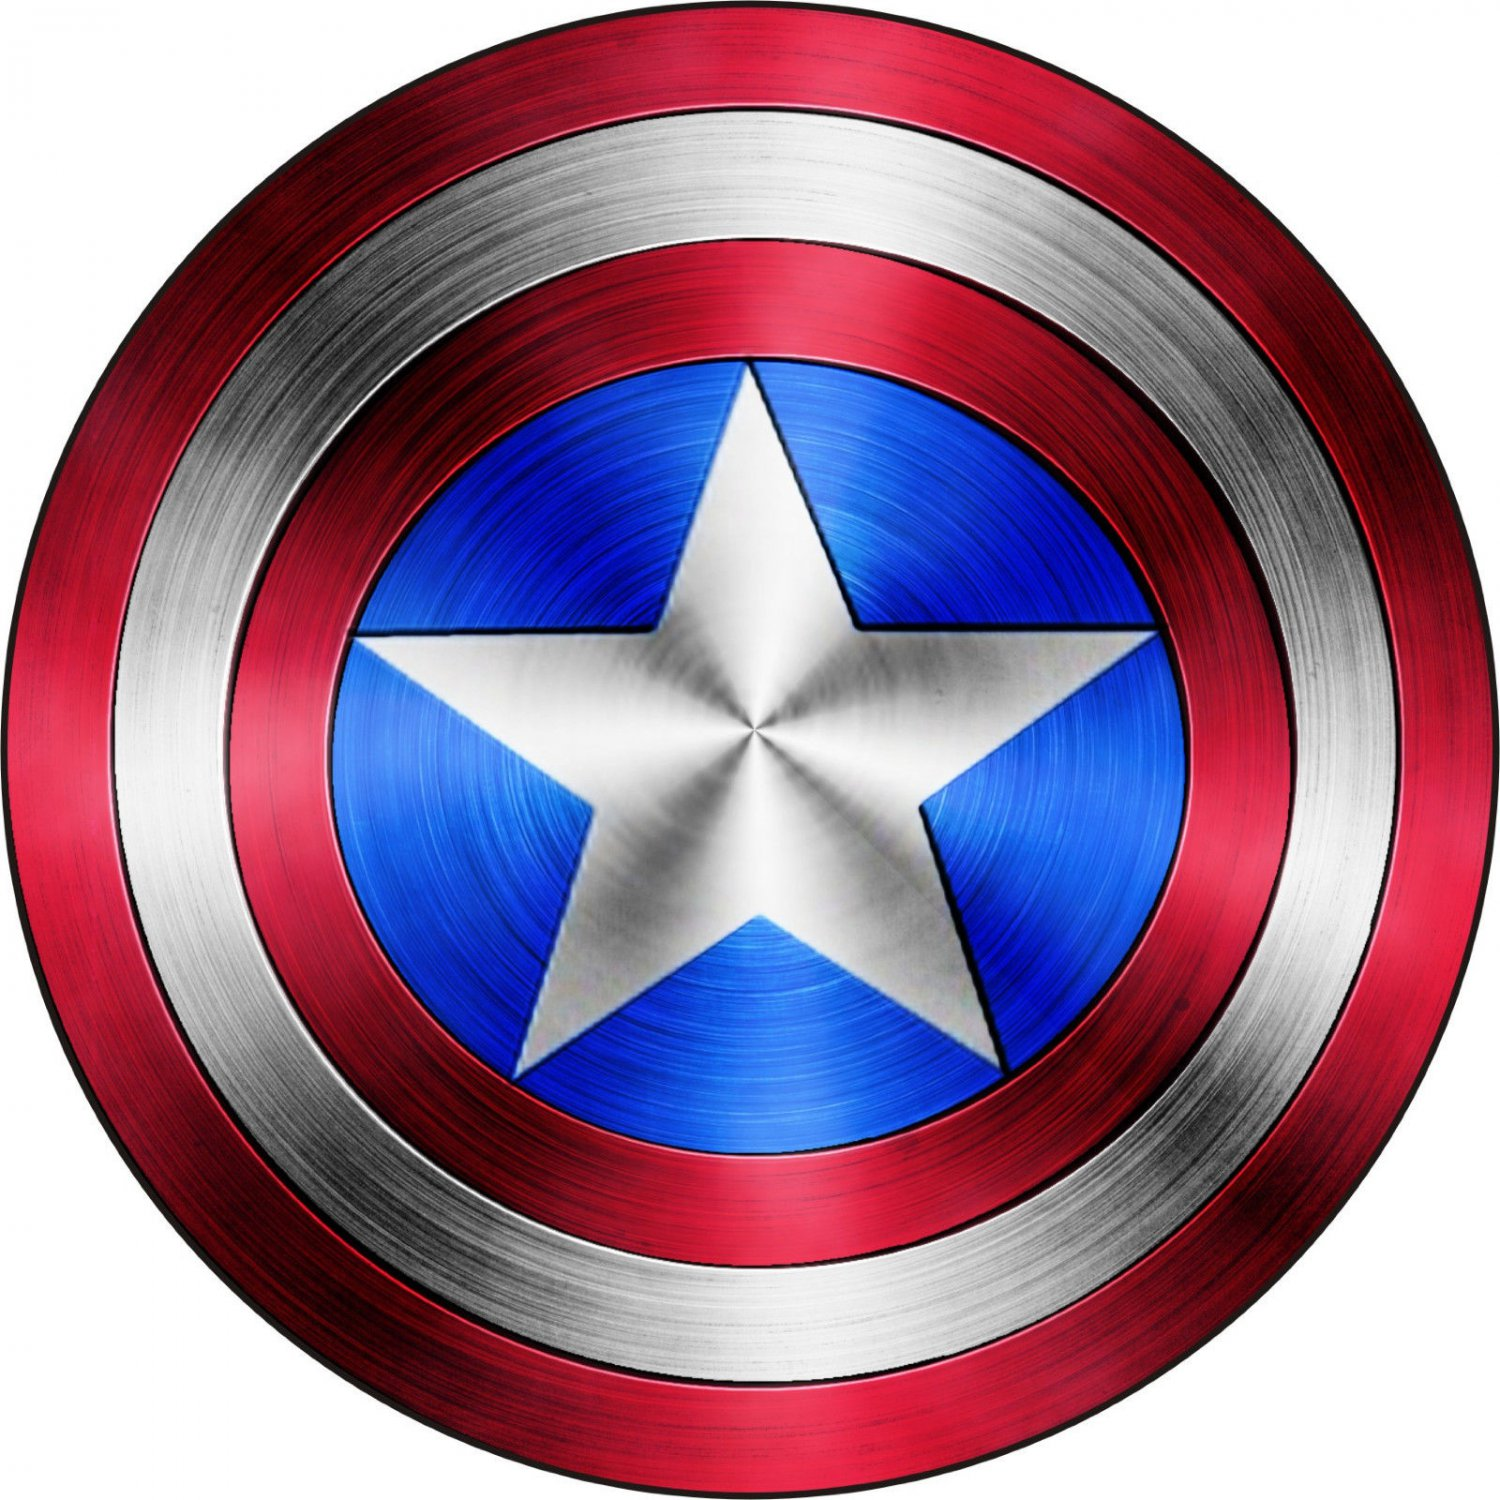 5 Inch Full Color Captain America Shield Vinyl Decal Car Truck Window Sticker Yeti Laptop 00009